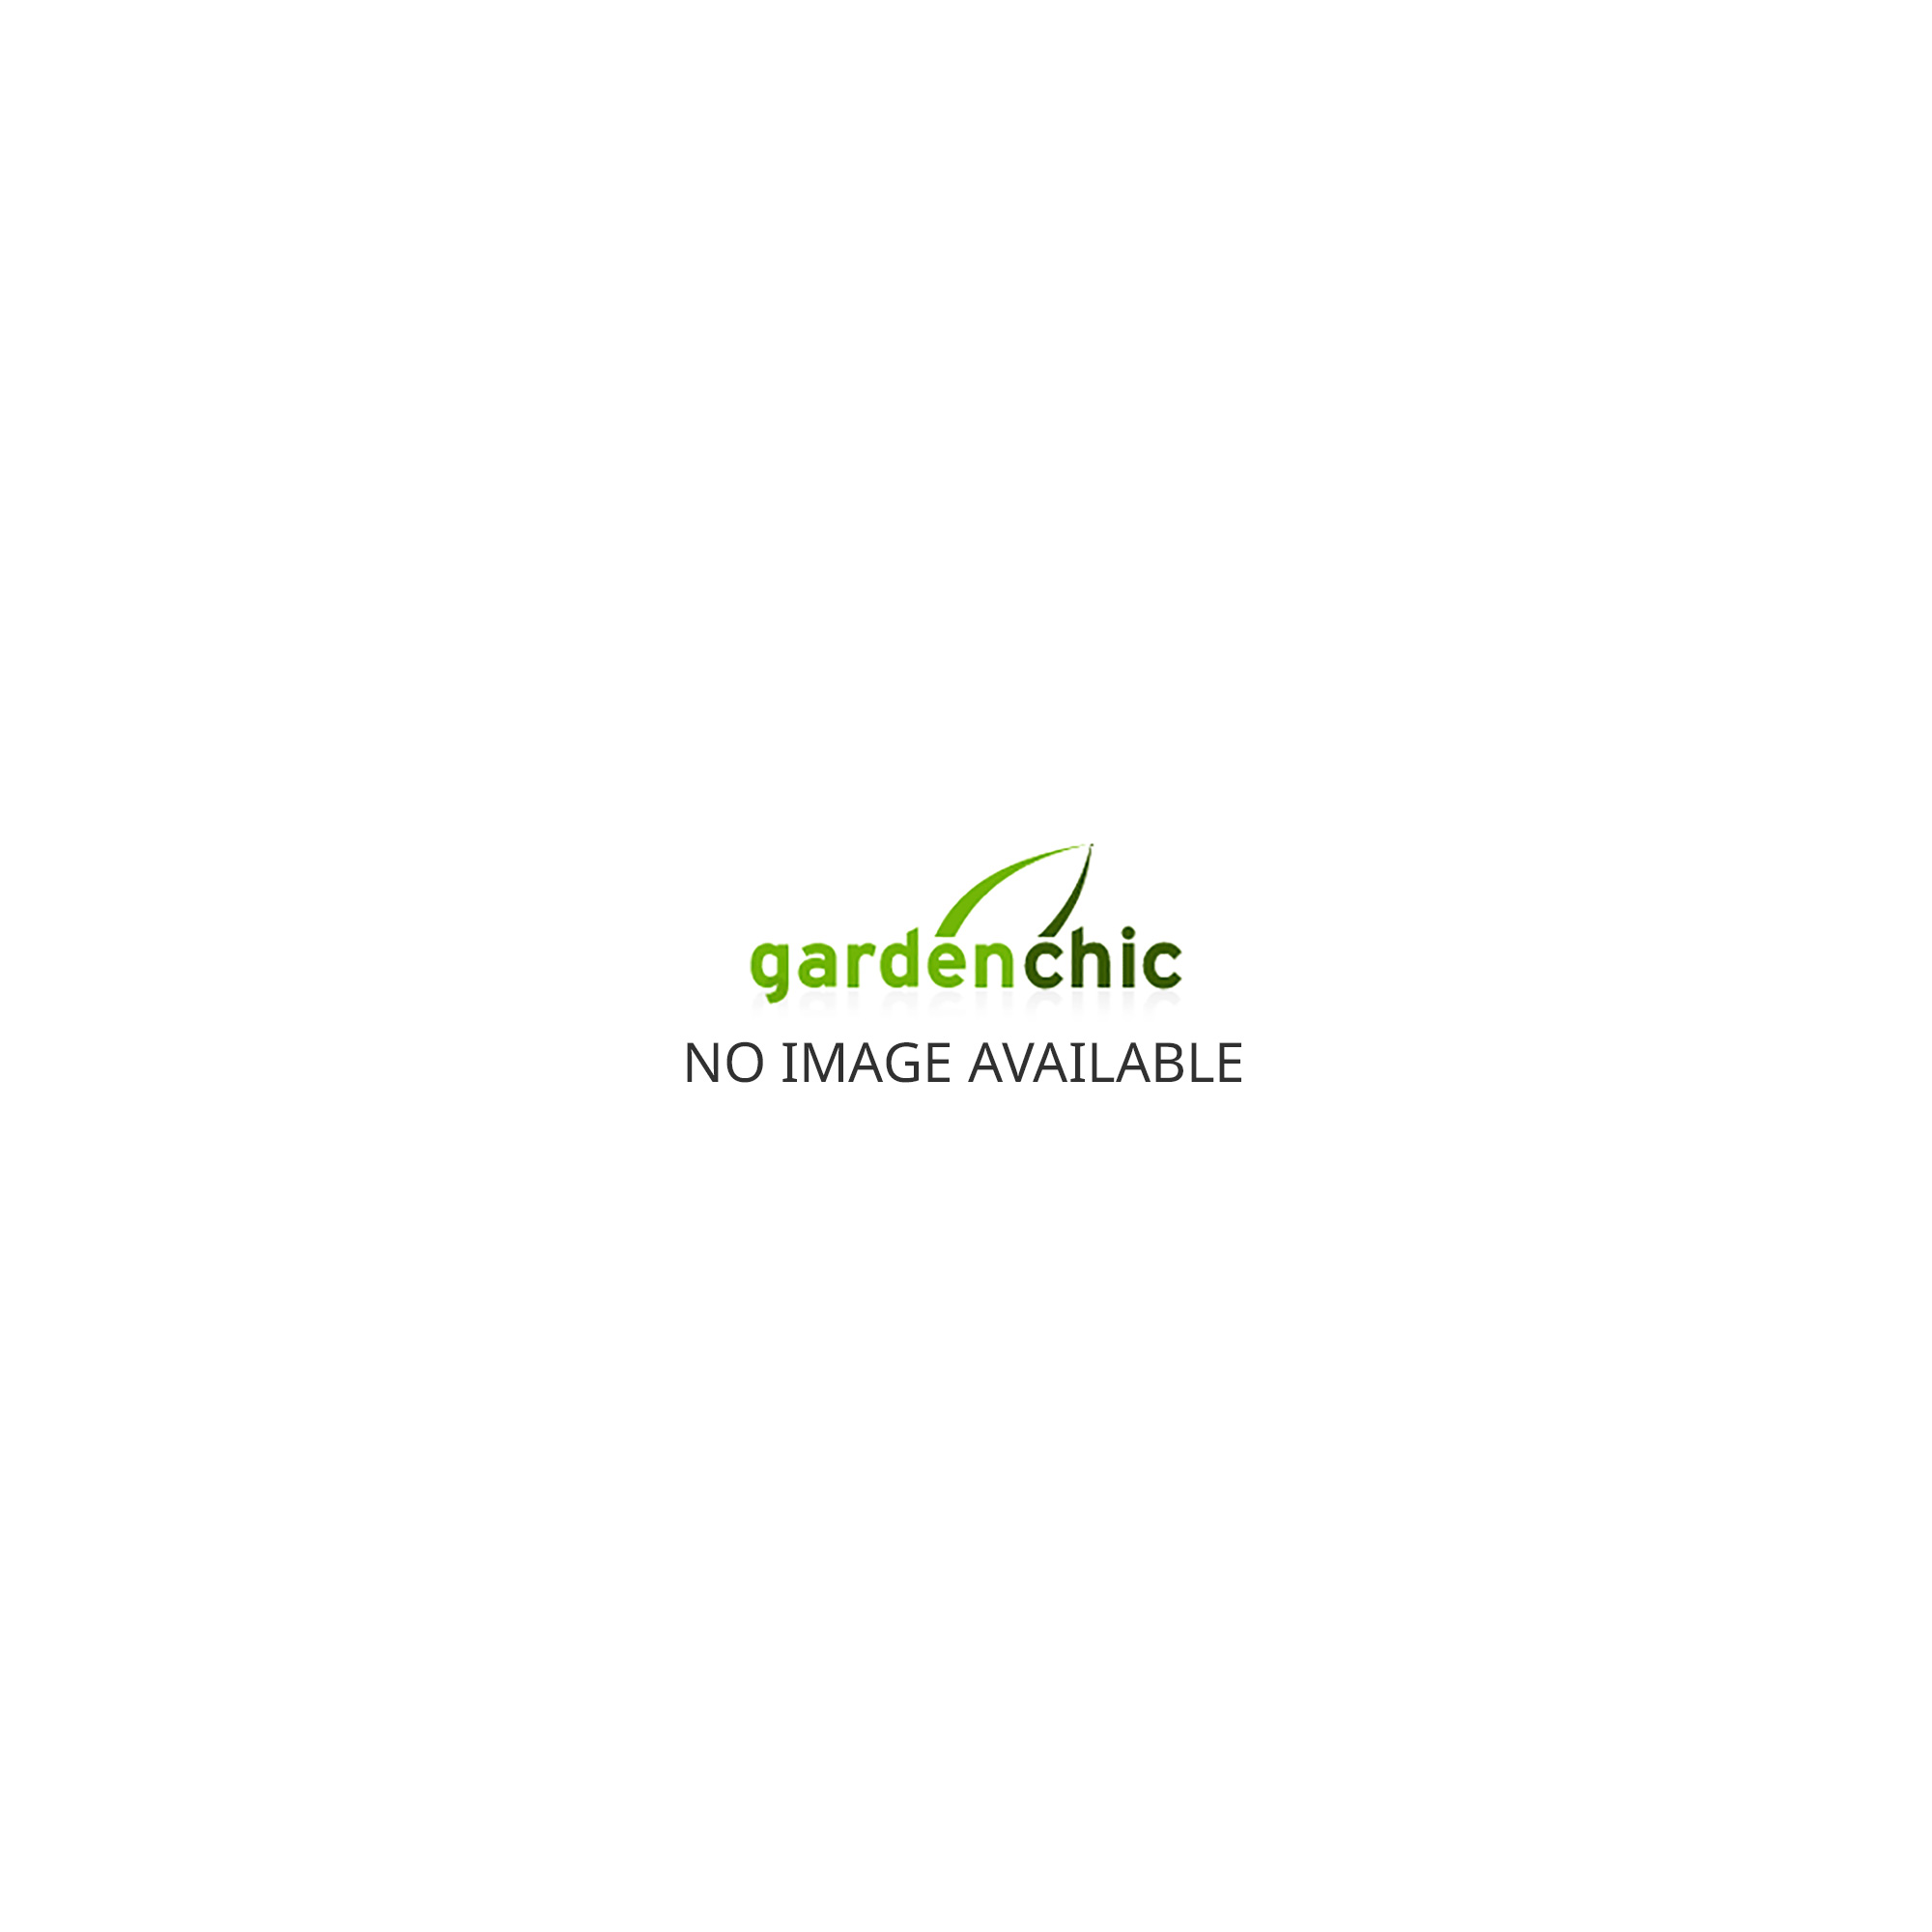 Broadway 8 x 6 Lean-To Greenhouse (Green) FREE Waterbutt, Connection Kit and Blinds until May 2018